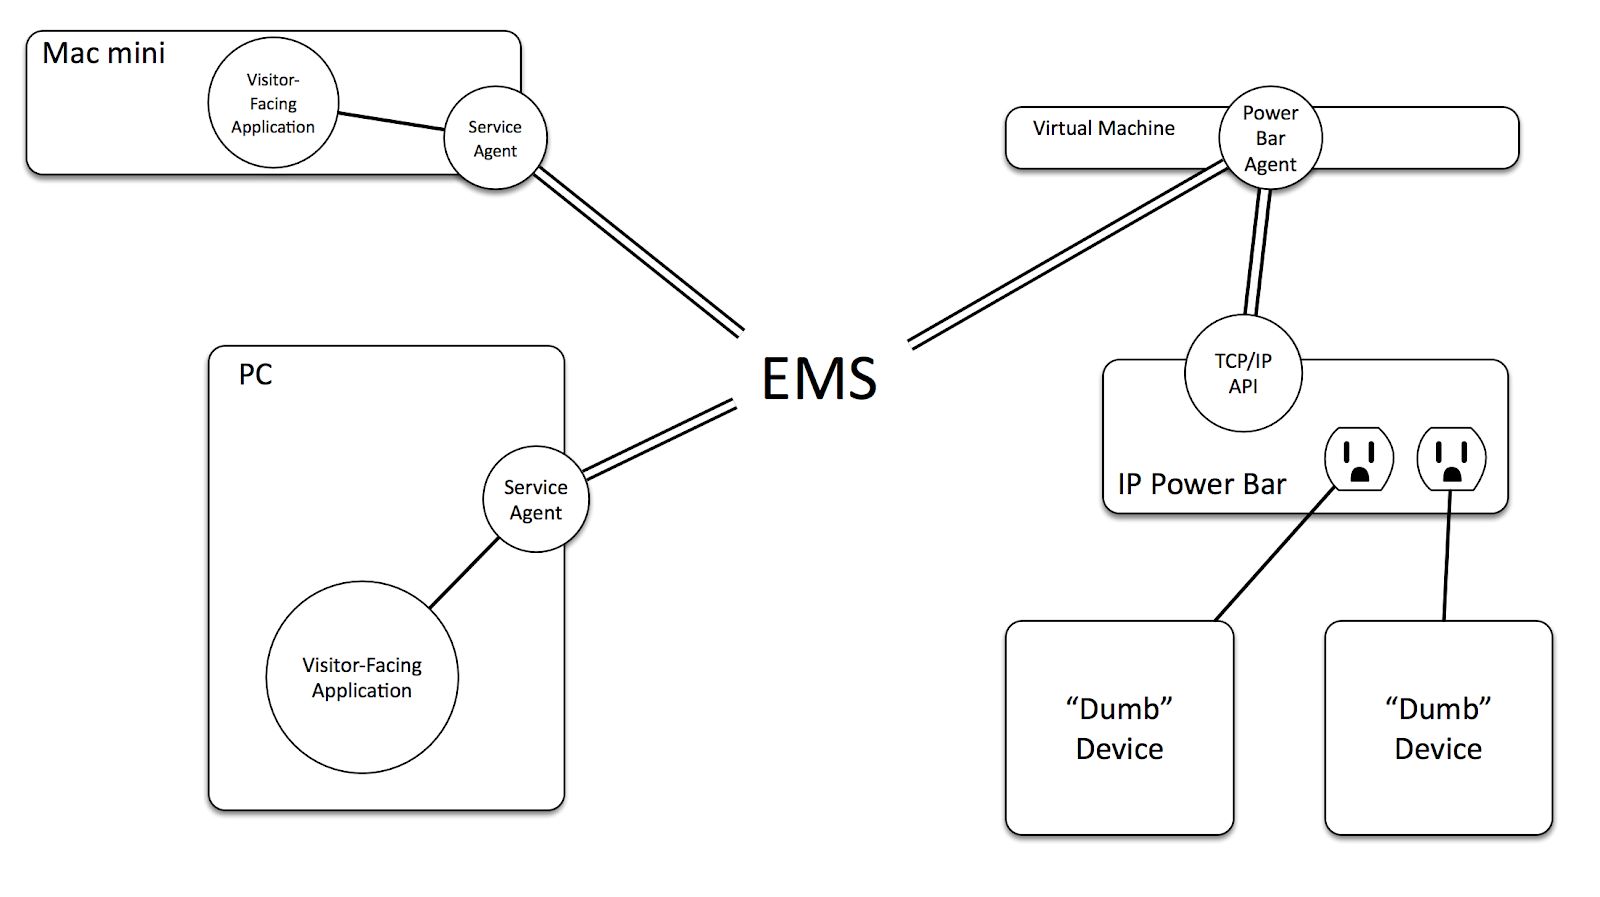 Building A Smart Museum Tackling In Gallery Challenges With Digital Solutions Isolated Power Supply Virtual Remote Sense Figure 2 The Ems Uses Service Agent Model To Monitor And Control Connected Devices